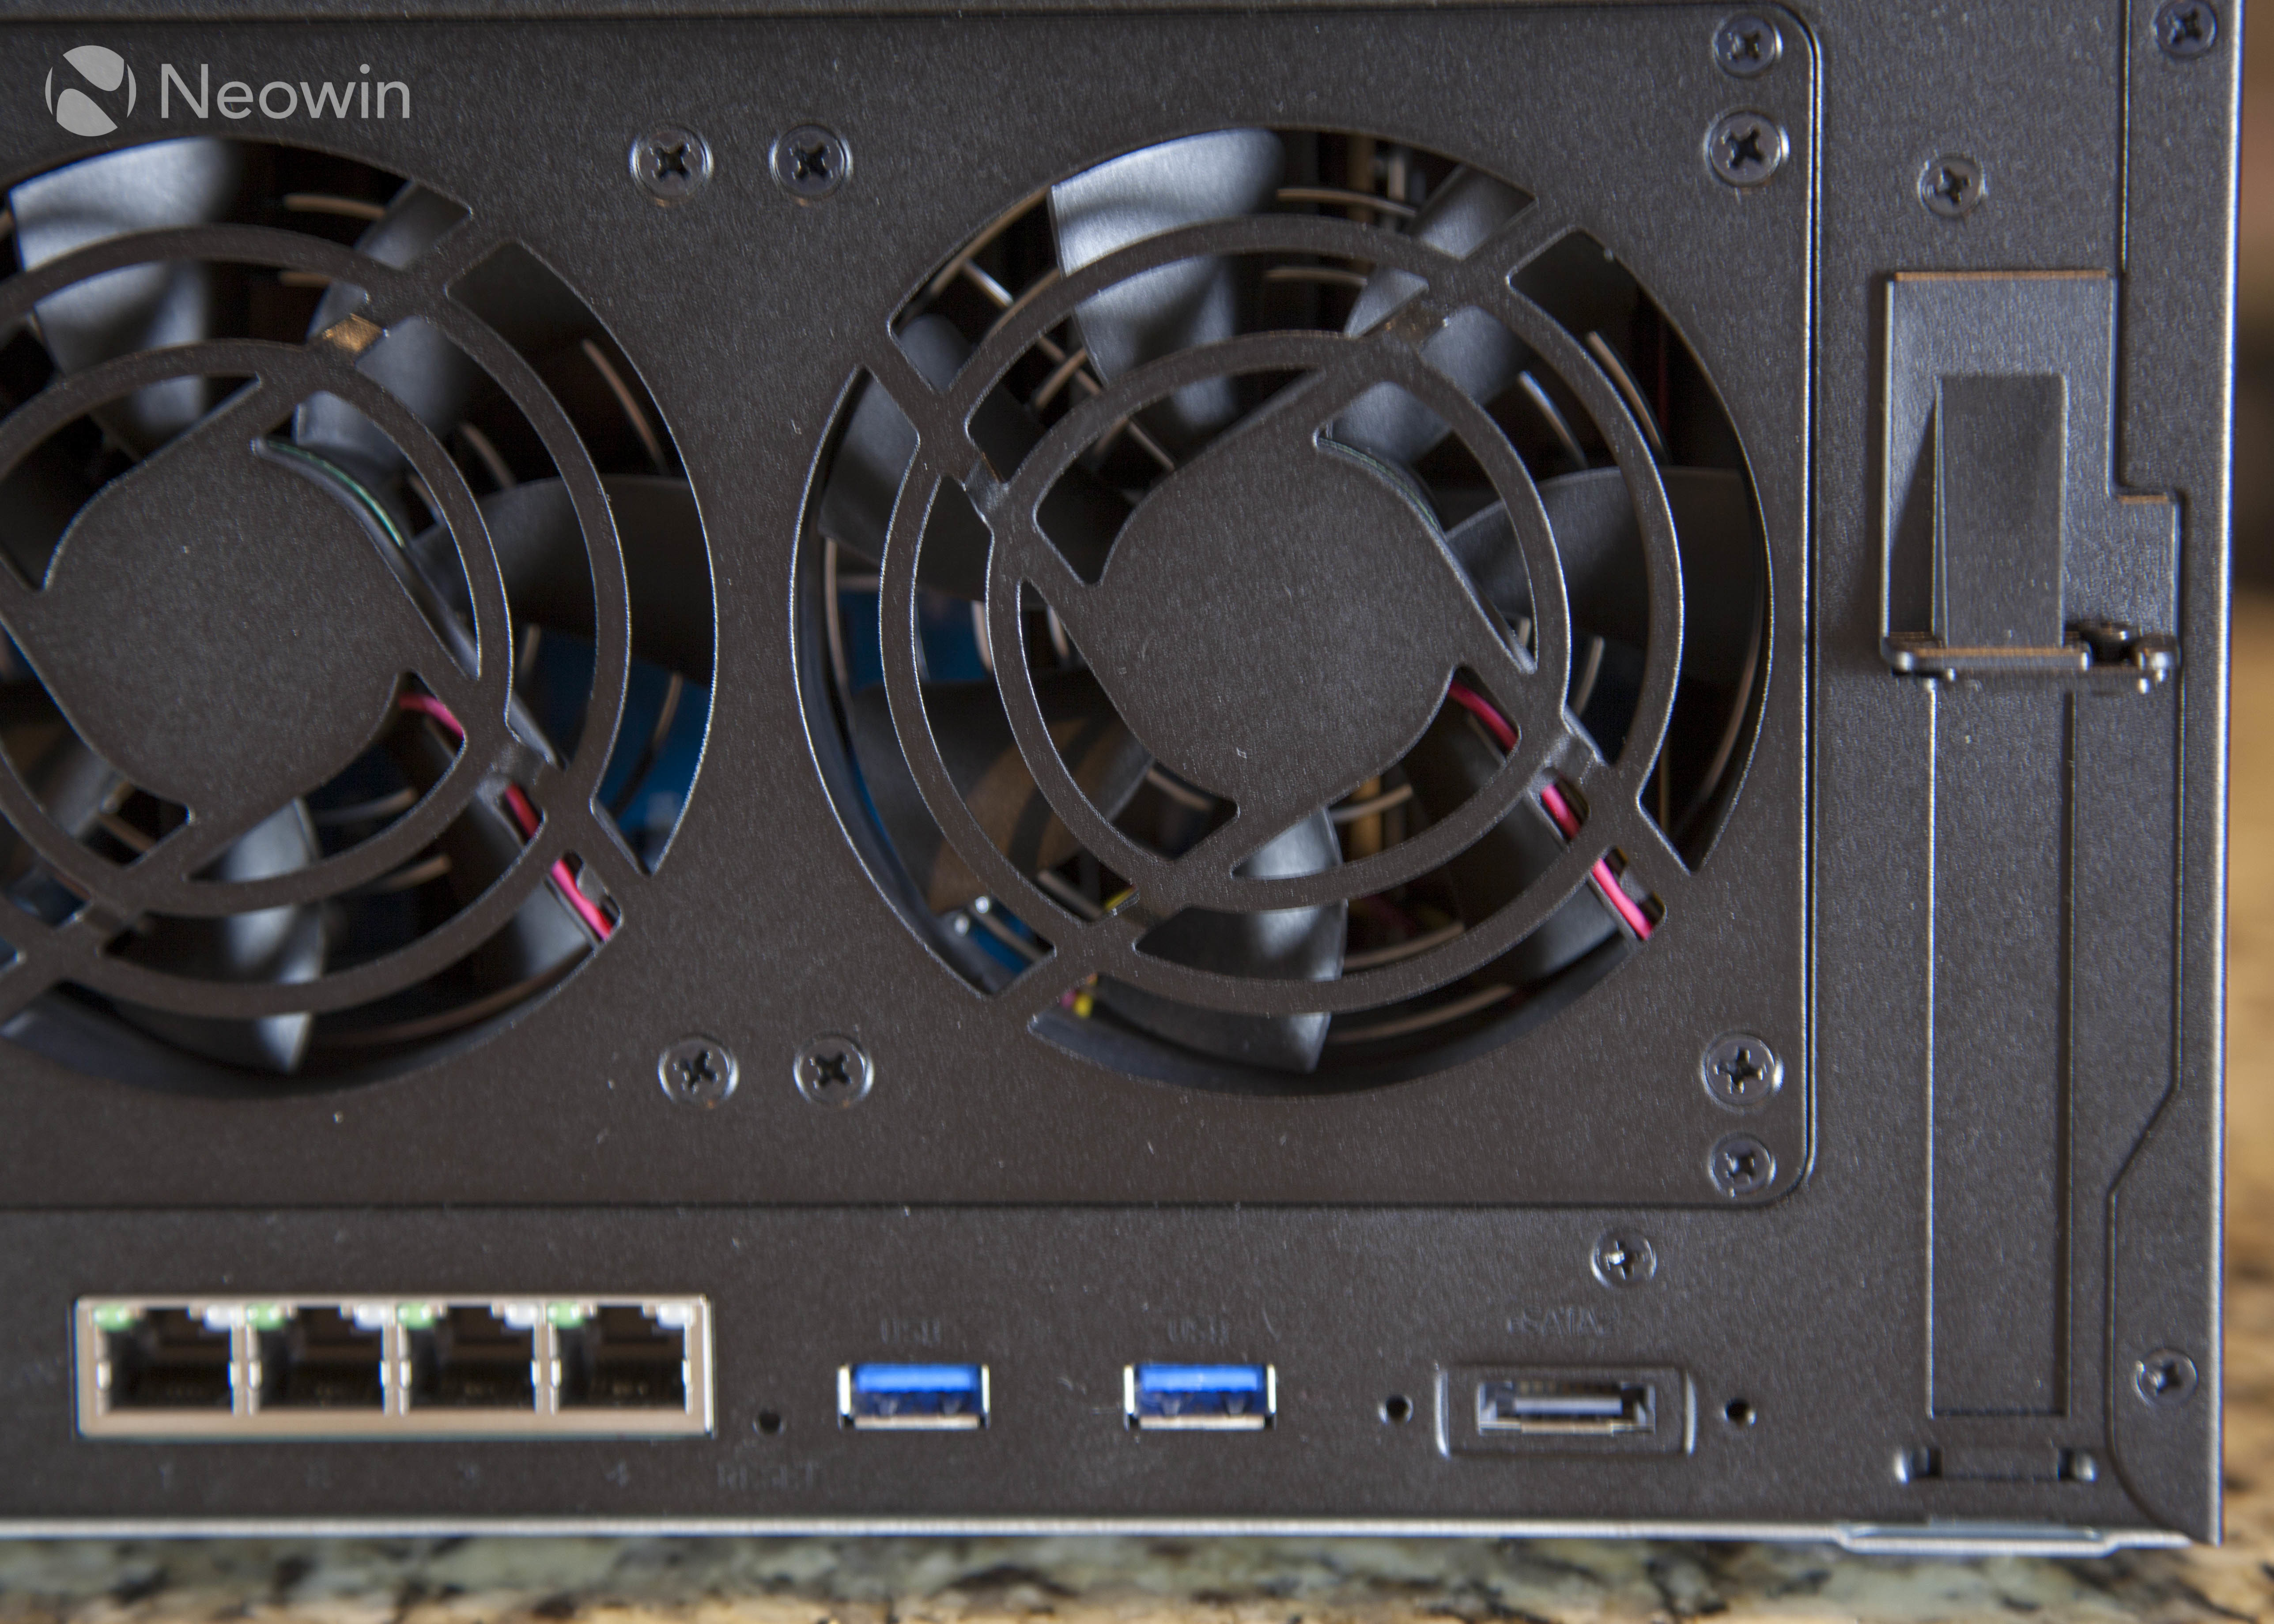 Review of the six drive Synology DS1618+ NAS device - Neowin